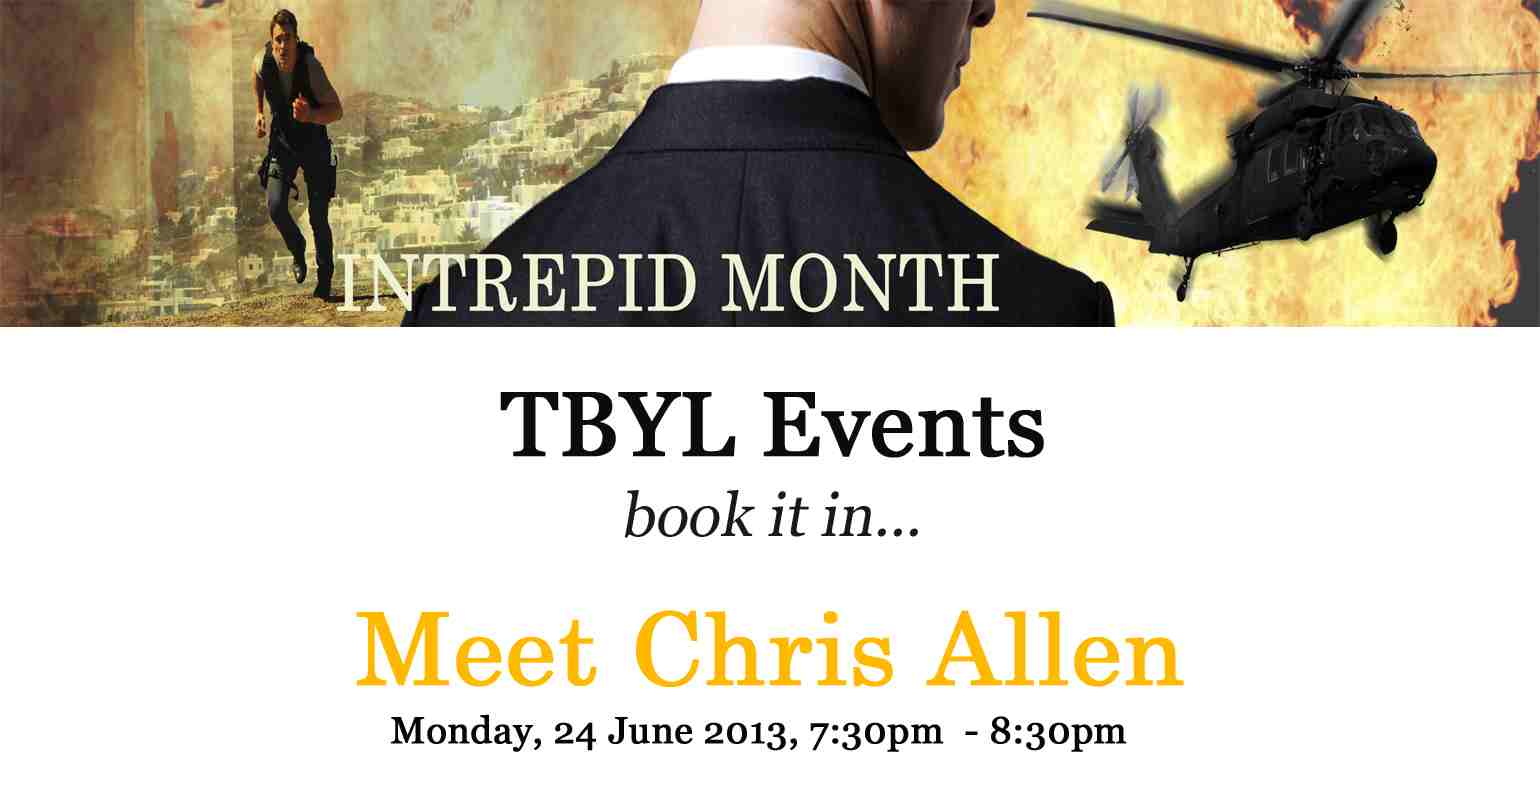 Meet Chris Allen during a Facebook Chat at That Book You Like's Intrepid Month!